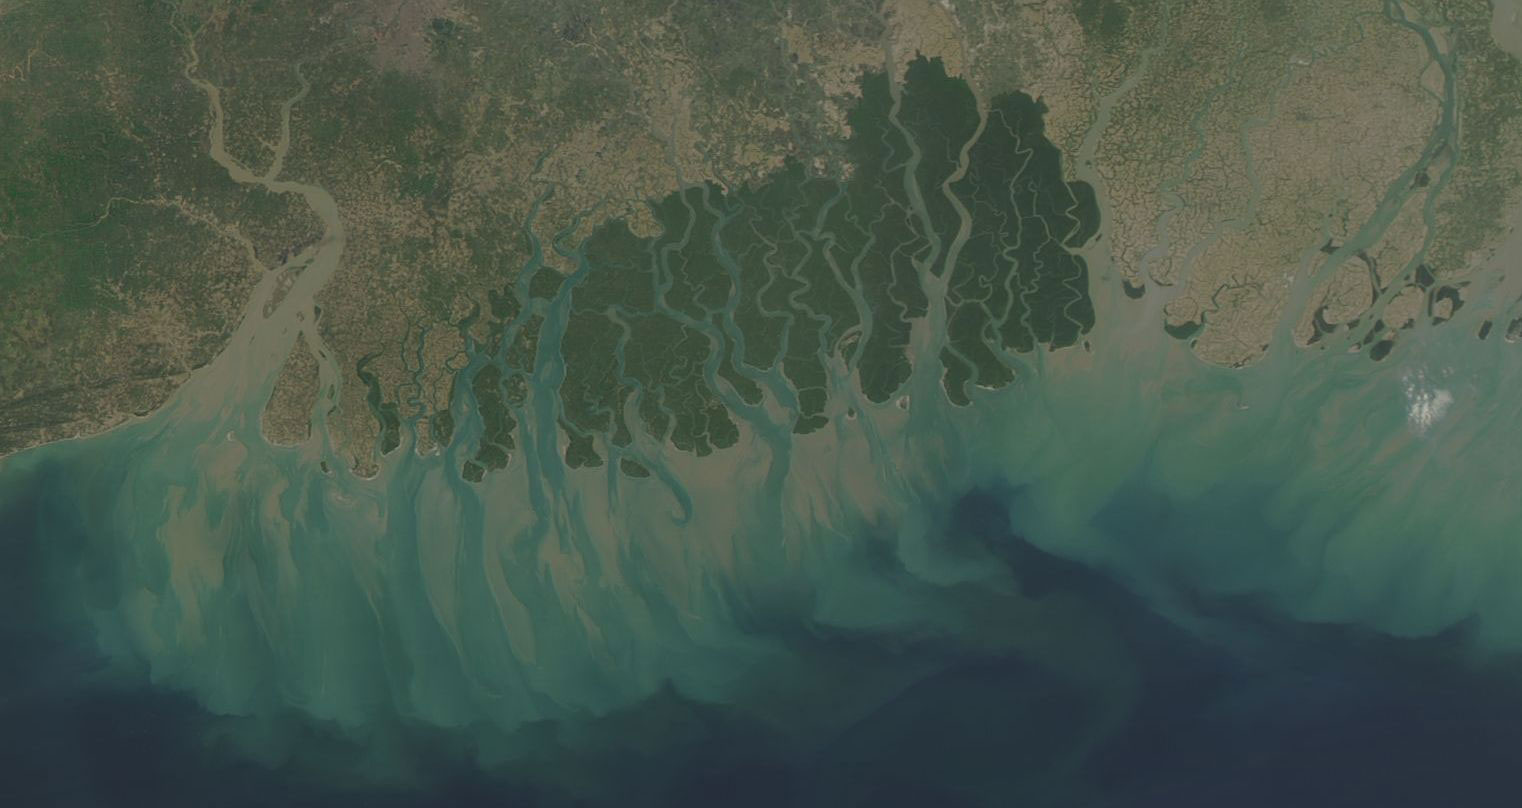 Sundarban forest in India and Bangladesh on 28 February 2018 (MODIS/Aqua)